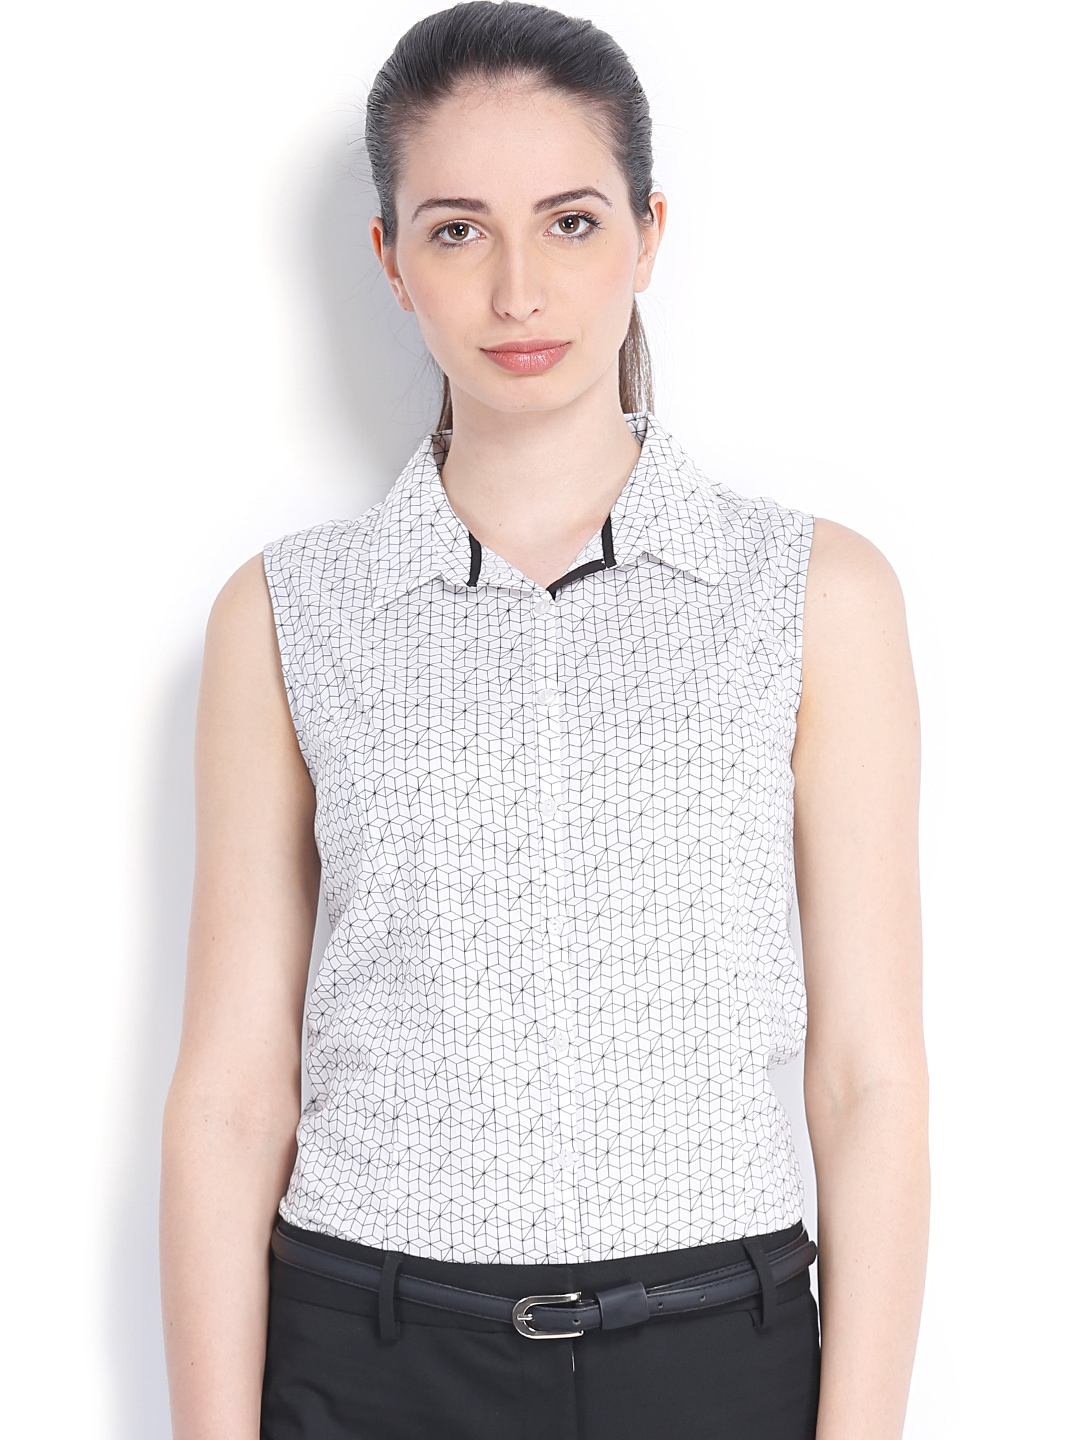 Buy Arrow Women's clothing online at best prices. Choose from the latest collection of arrow jeans, tees, tops and much more at Flipkart. Free Shipping! Explore Plus. Login & Signup. More. Cart. Filters. CATEGORIES. Clothing. Women's Clothing.